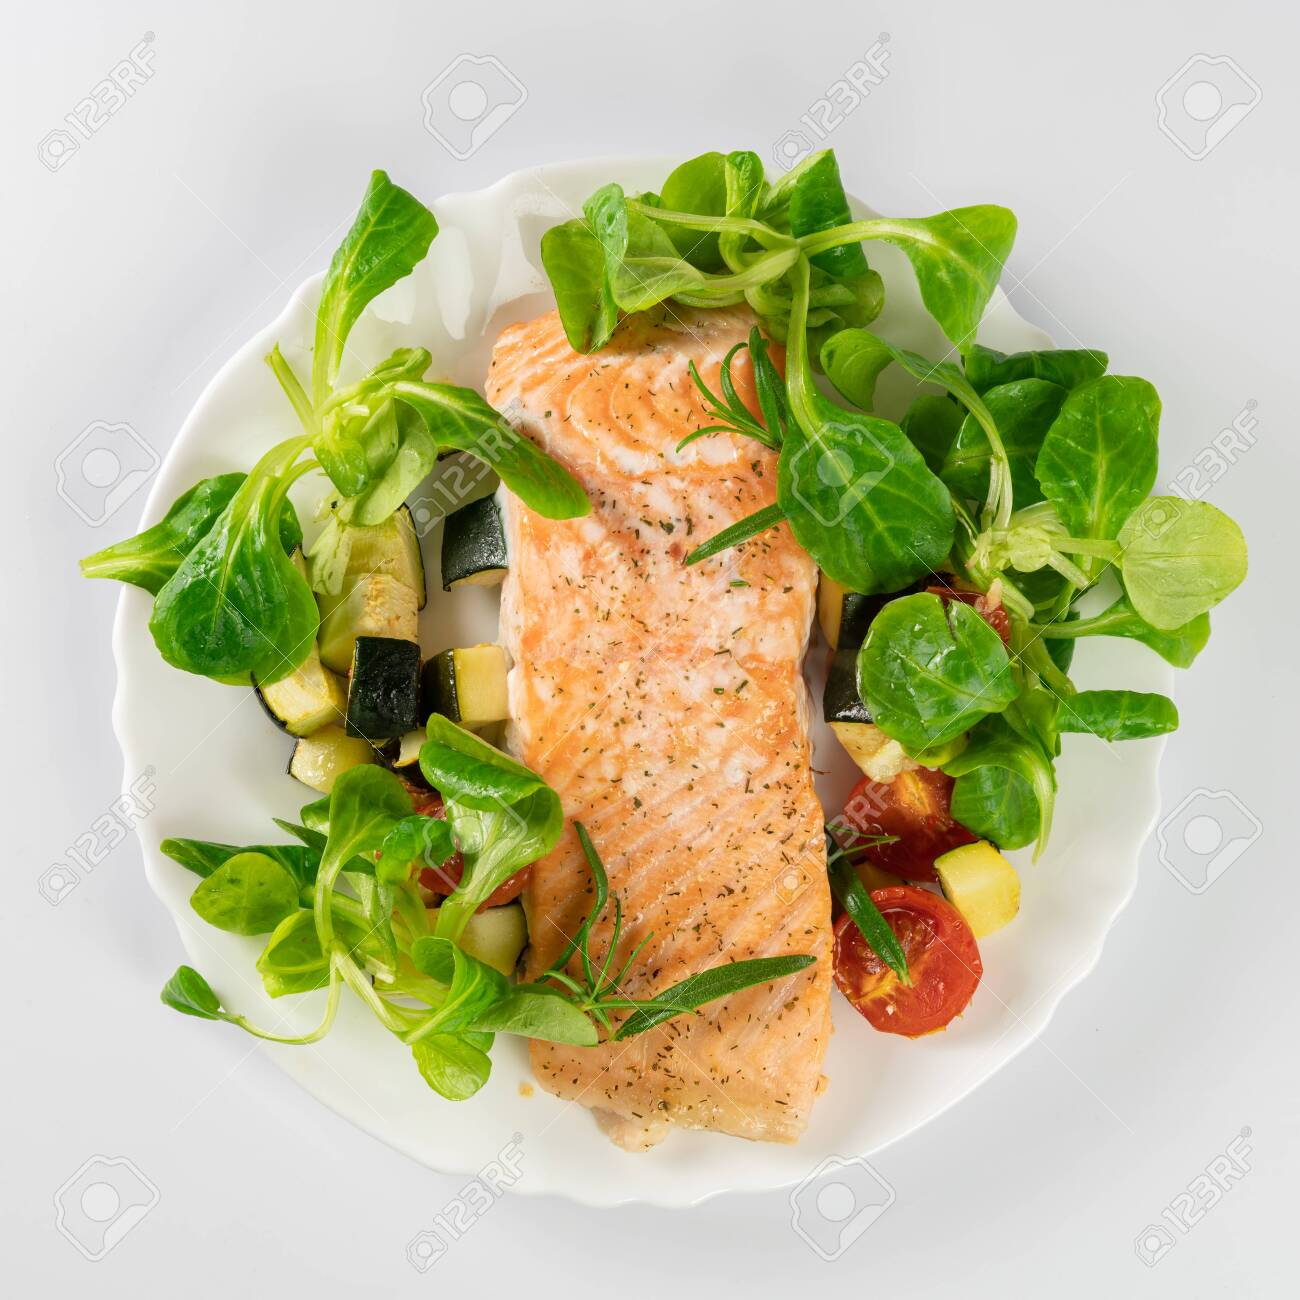 Delicious roasted fish served on white plate - 135181506